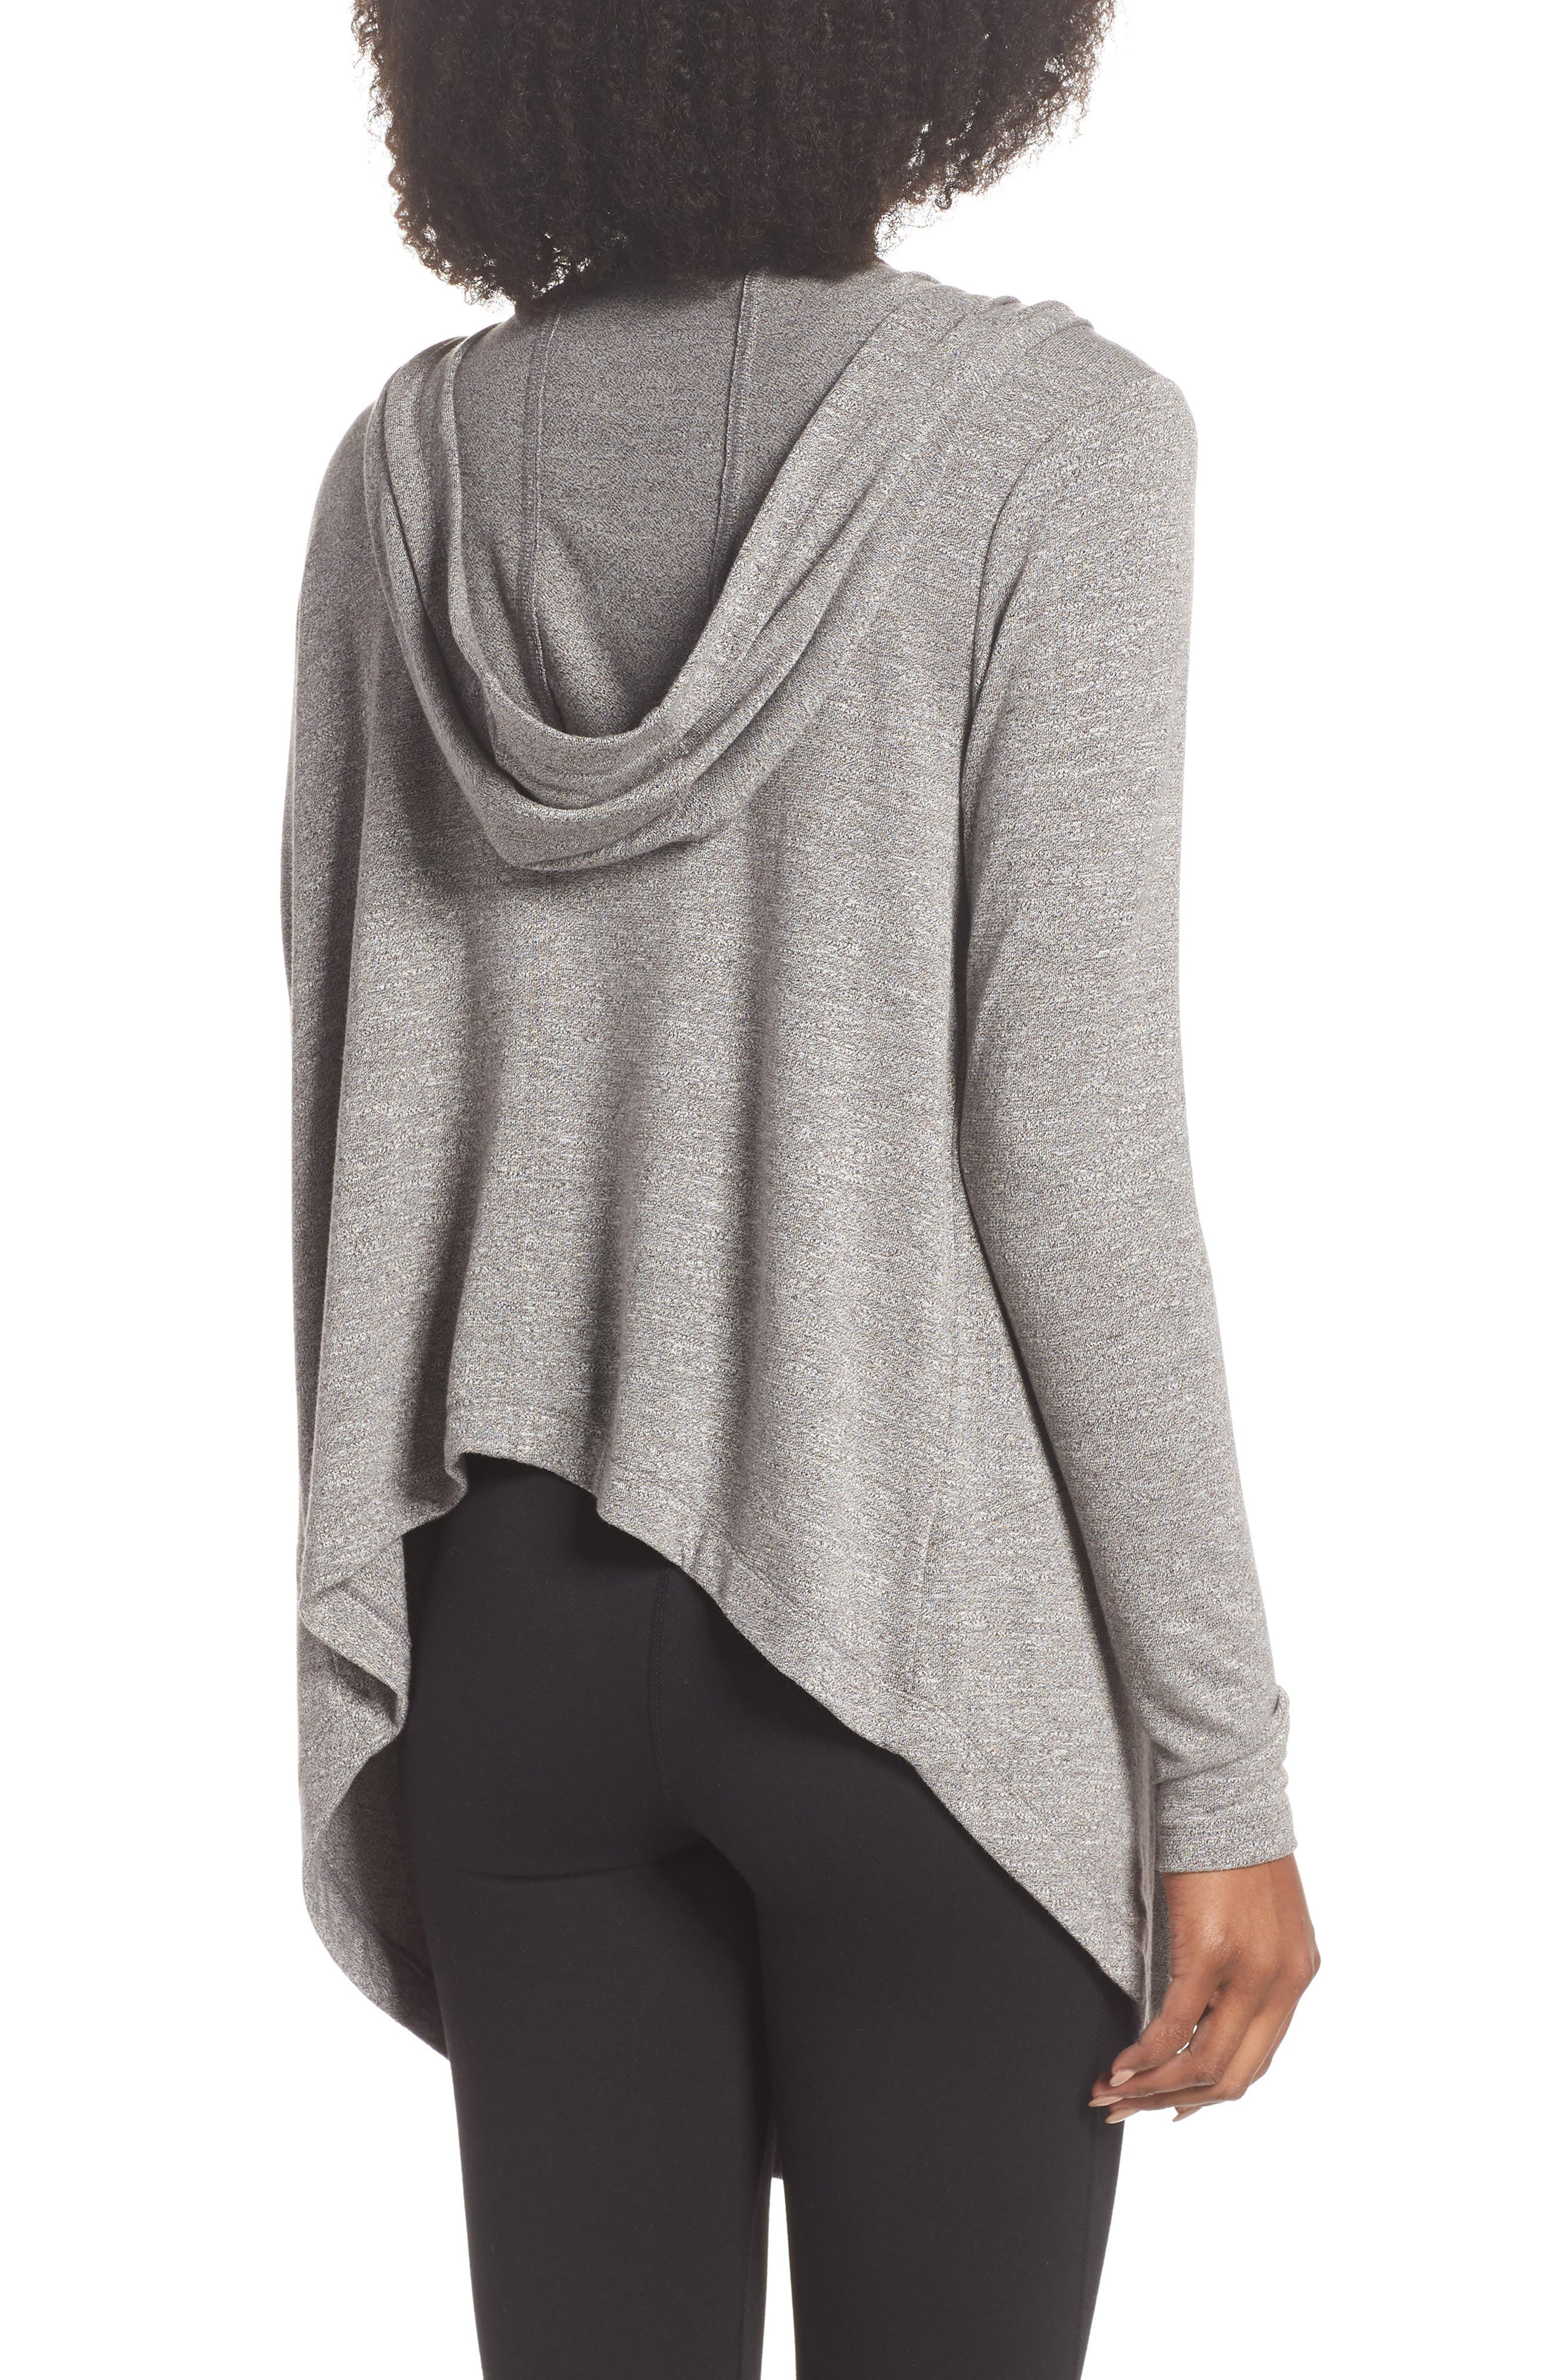 After Class Hooded Cardigan,                             Alternate thumbnail 2, color,                             GREY DARK HEATHER